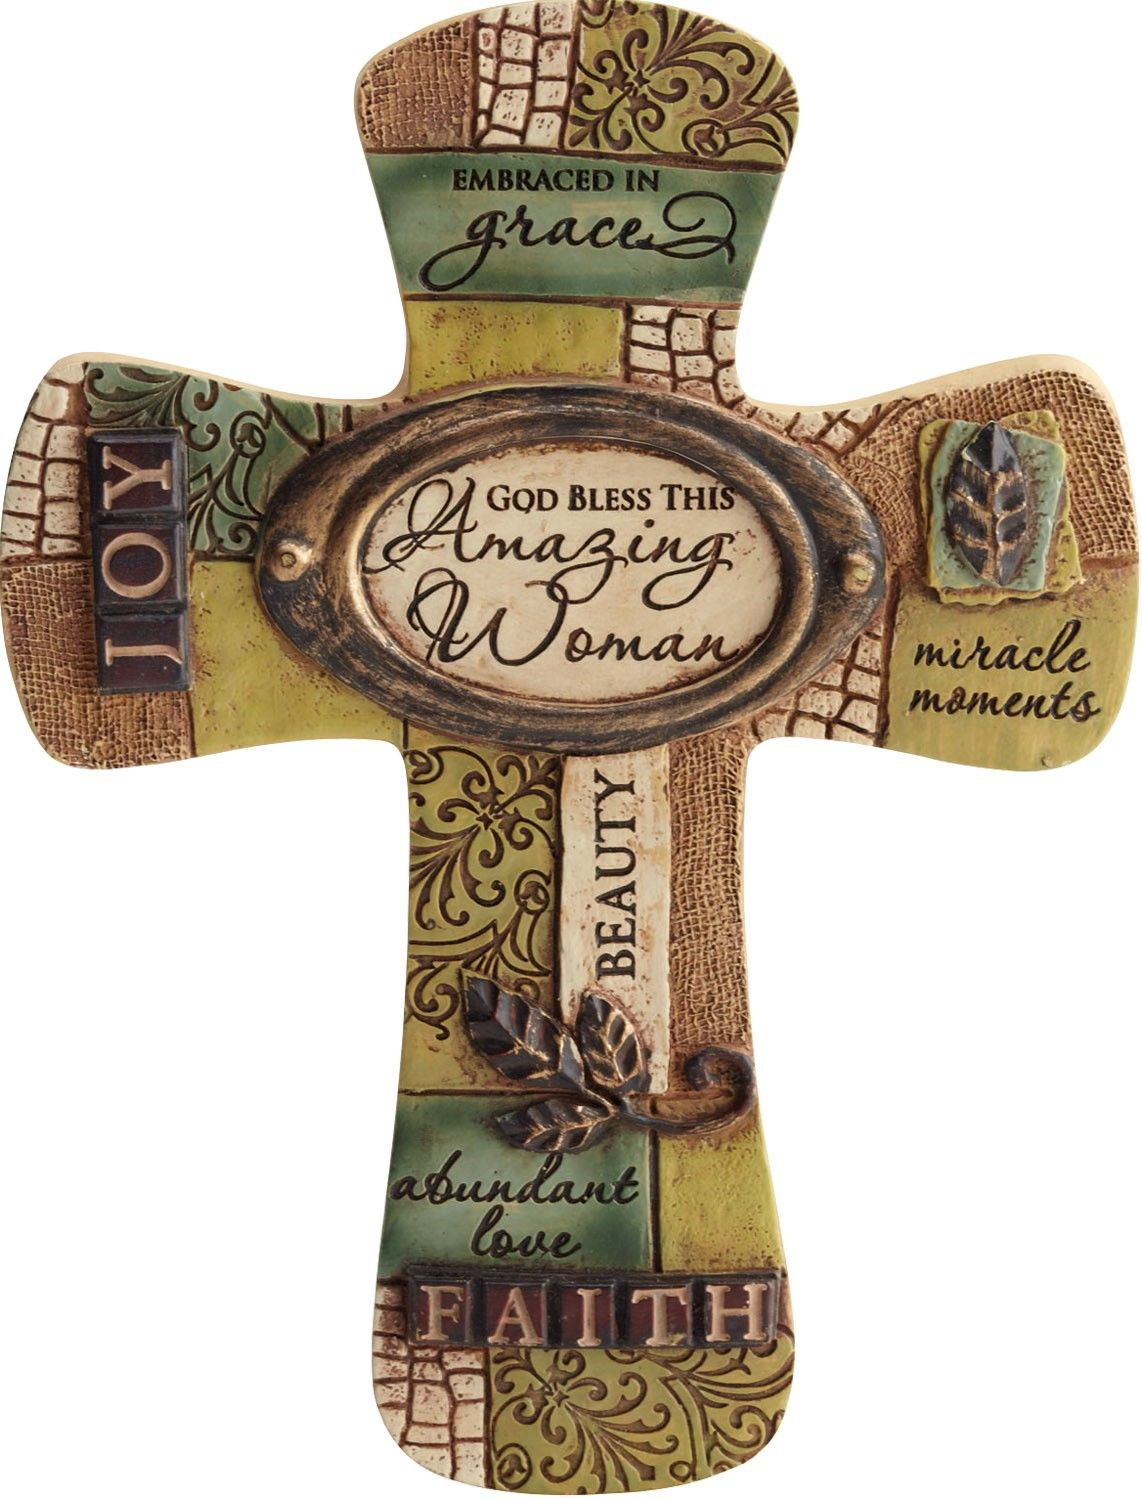 Besides cross clip art wall decor decorative wood cross decorative - This Cross Is Colored In Earthy Tones With A Center Plaque That Reads Decorative Crosseswall